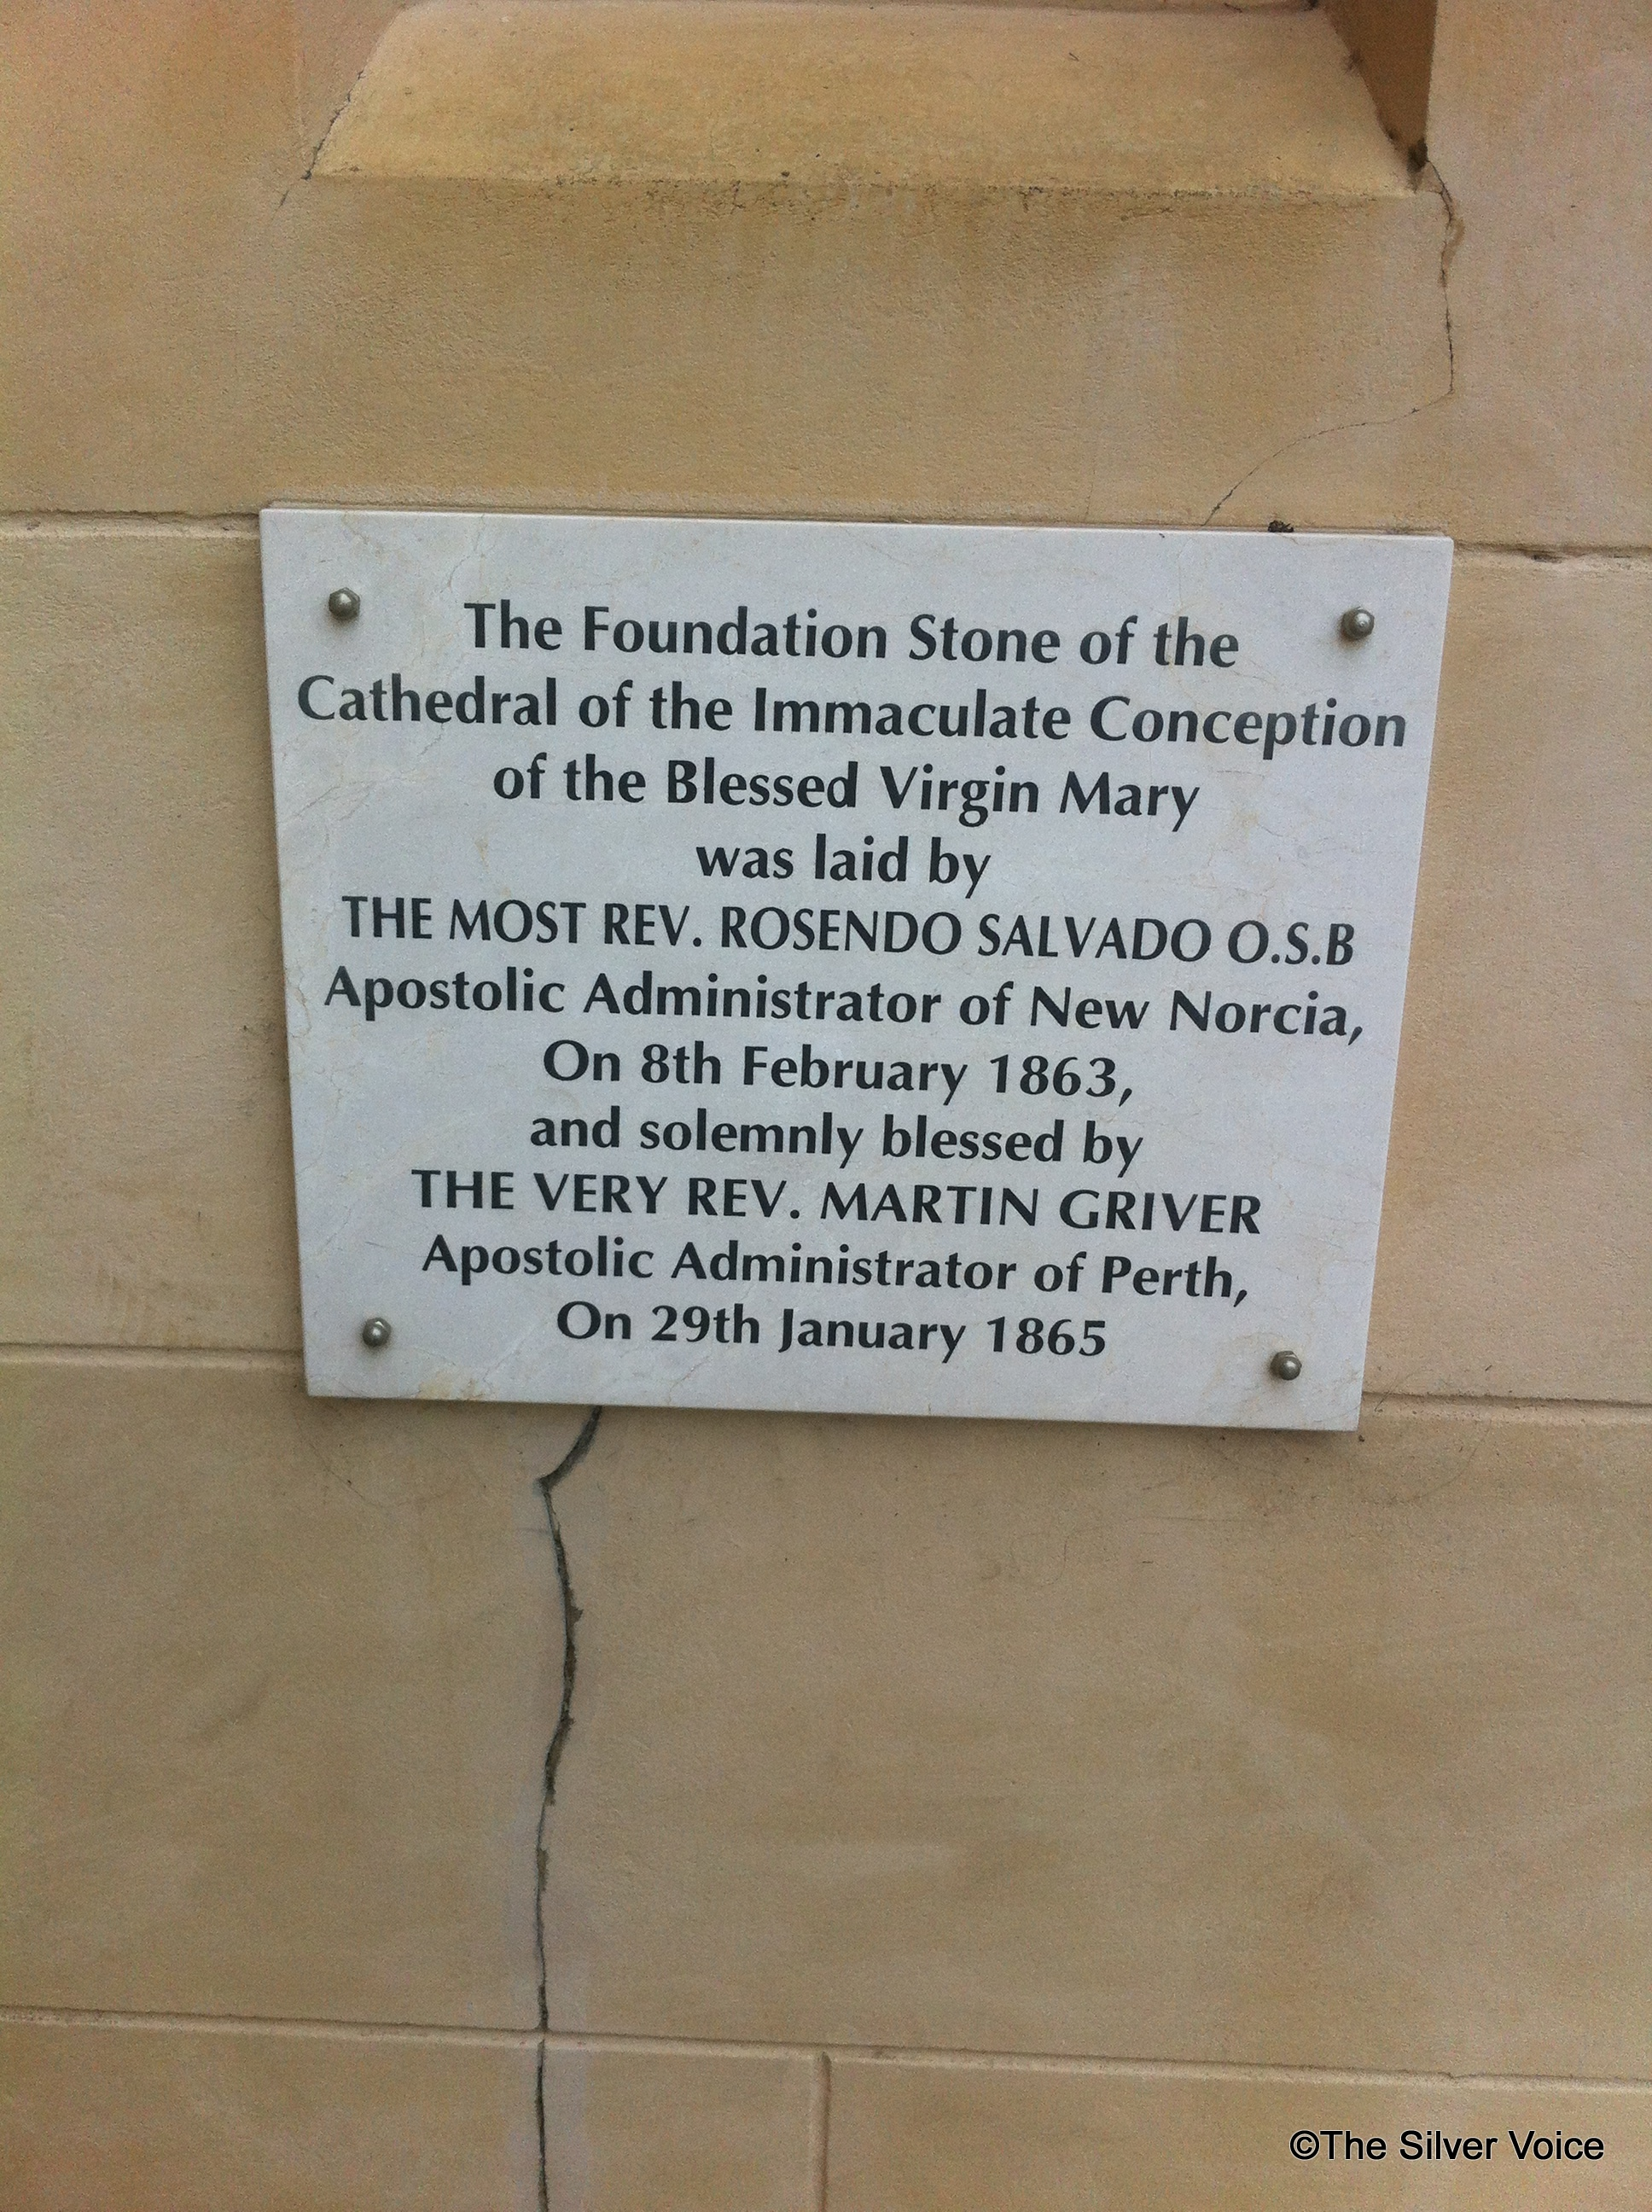 The foundation stone of the original structure